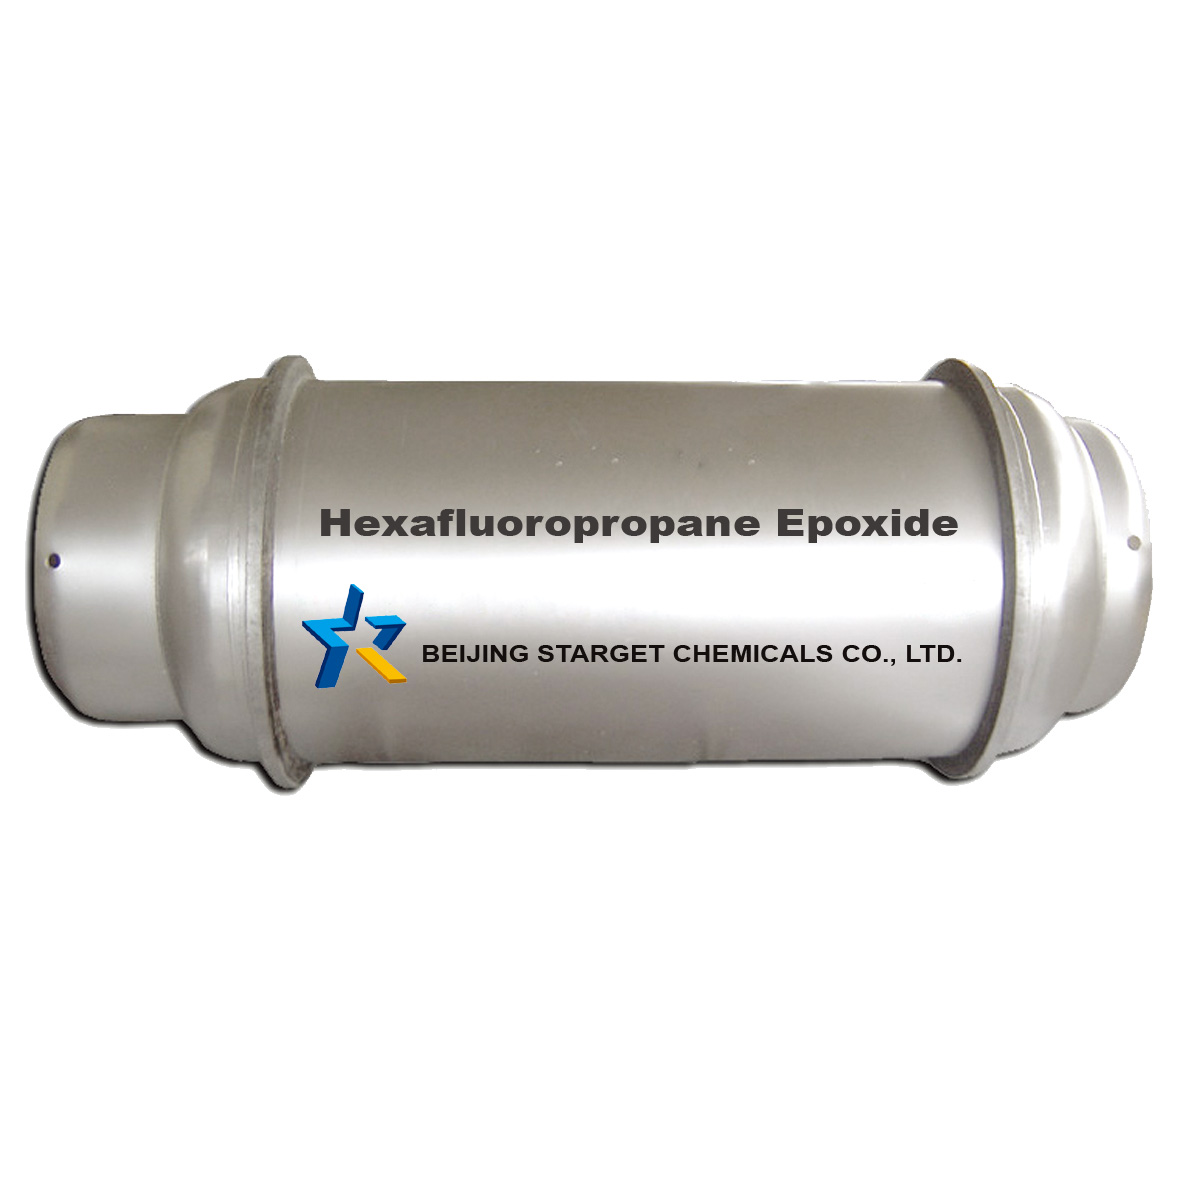 Hexafluoropropane Epoxide